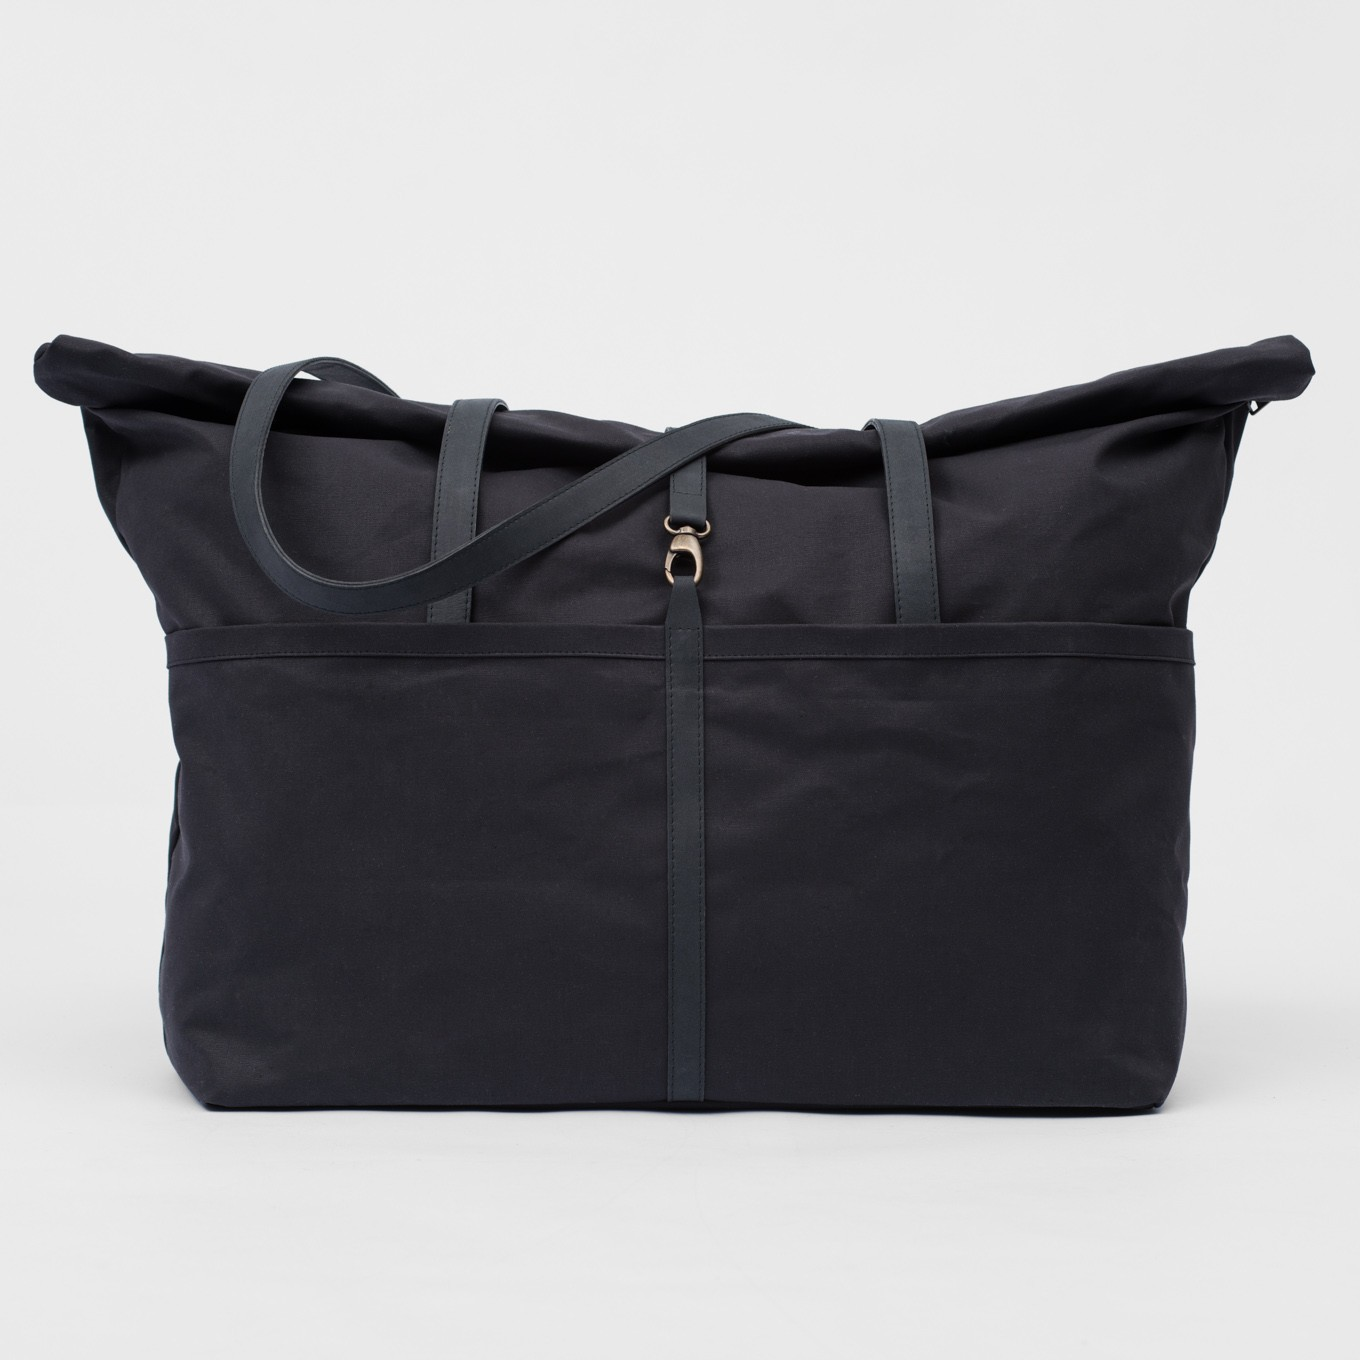 37_Weekender-Coated Cotton-Leather-Hand Luggage